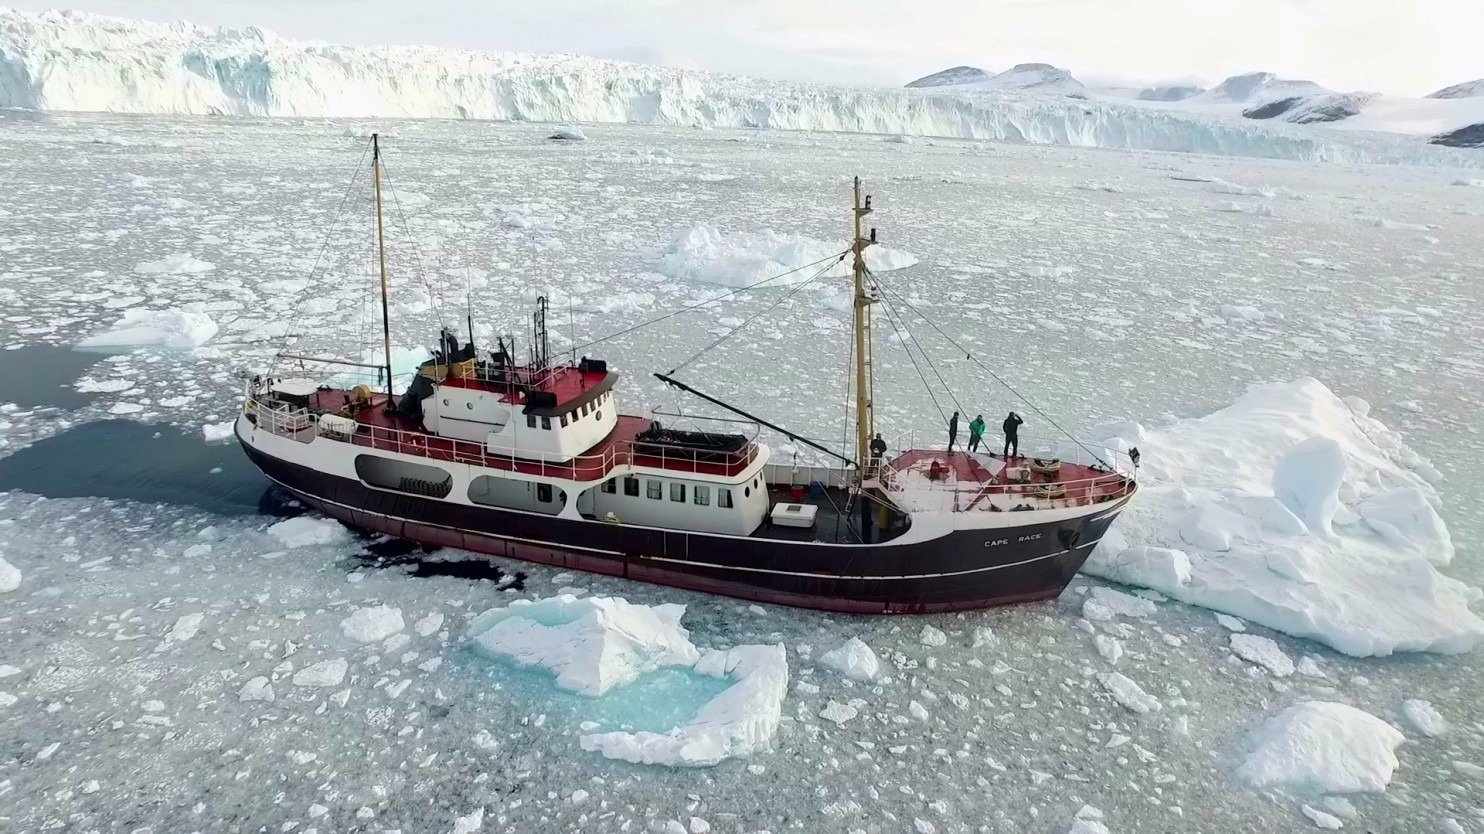 NASA took on an unprecedented study of Greenland's melting. Now, the data are coming in.